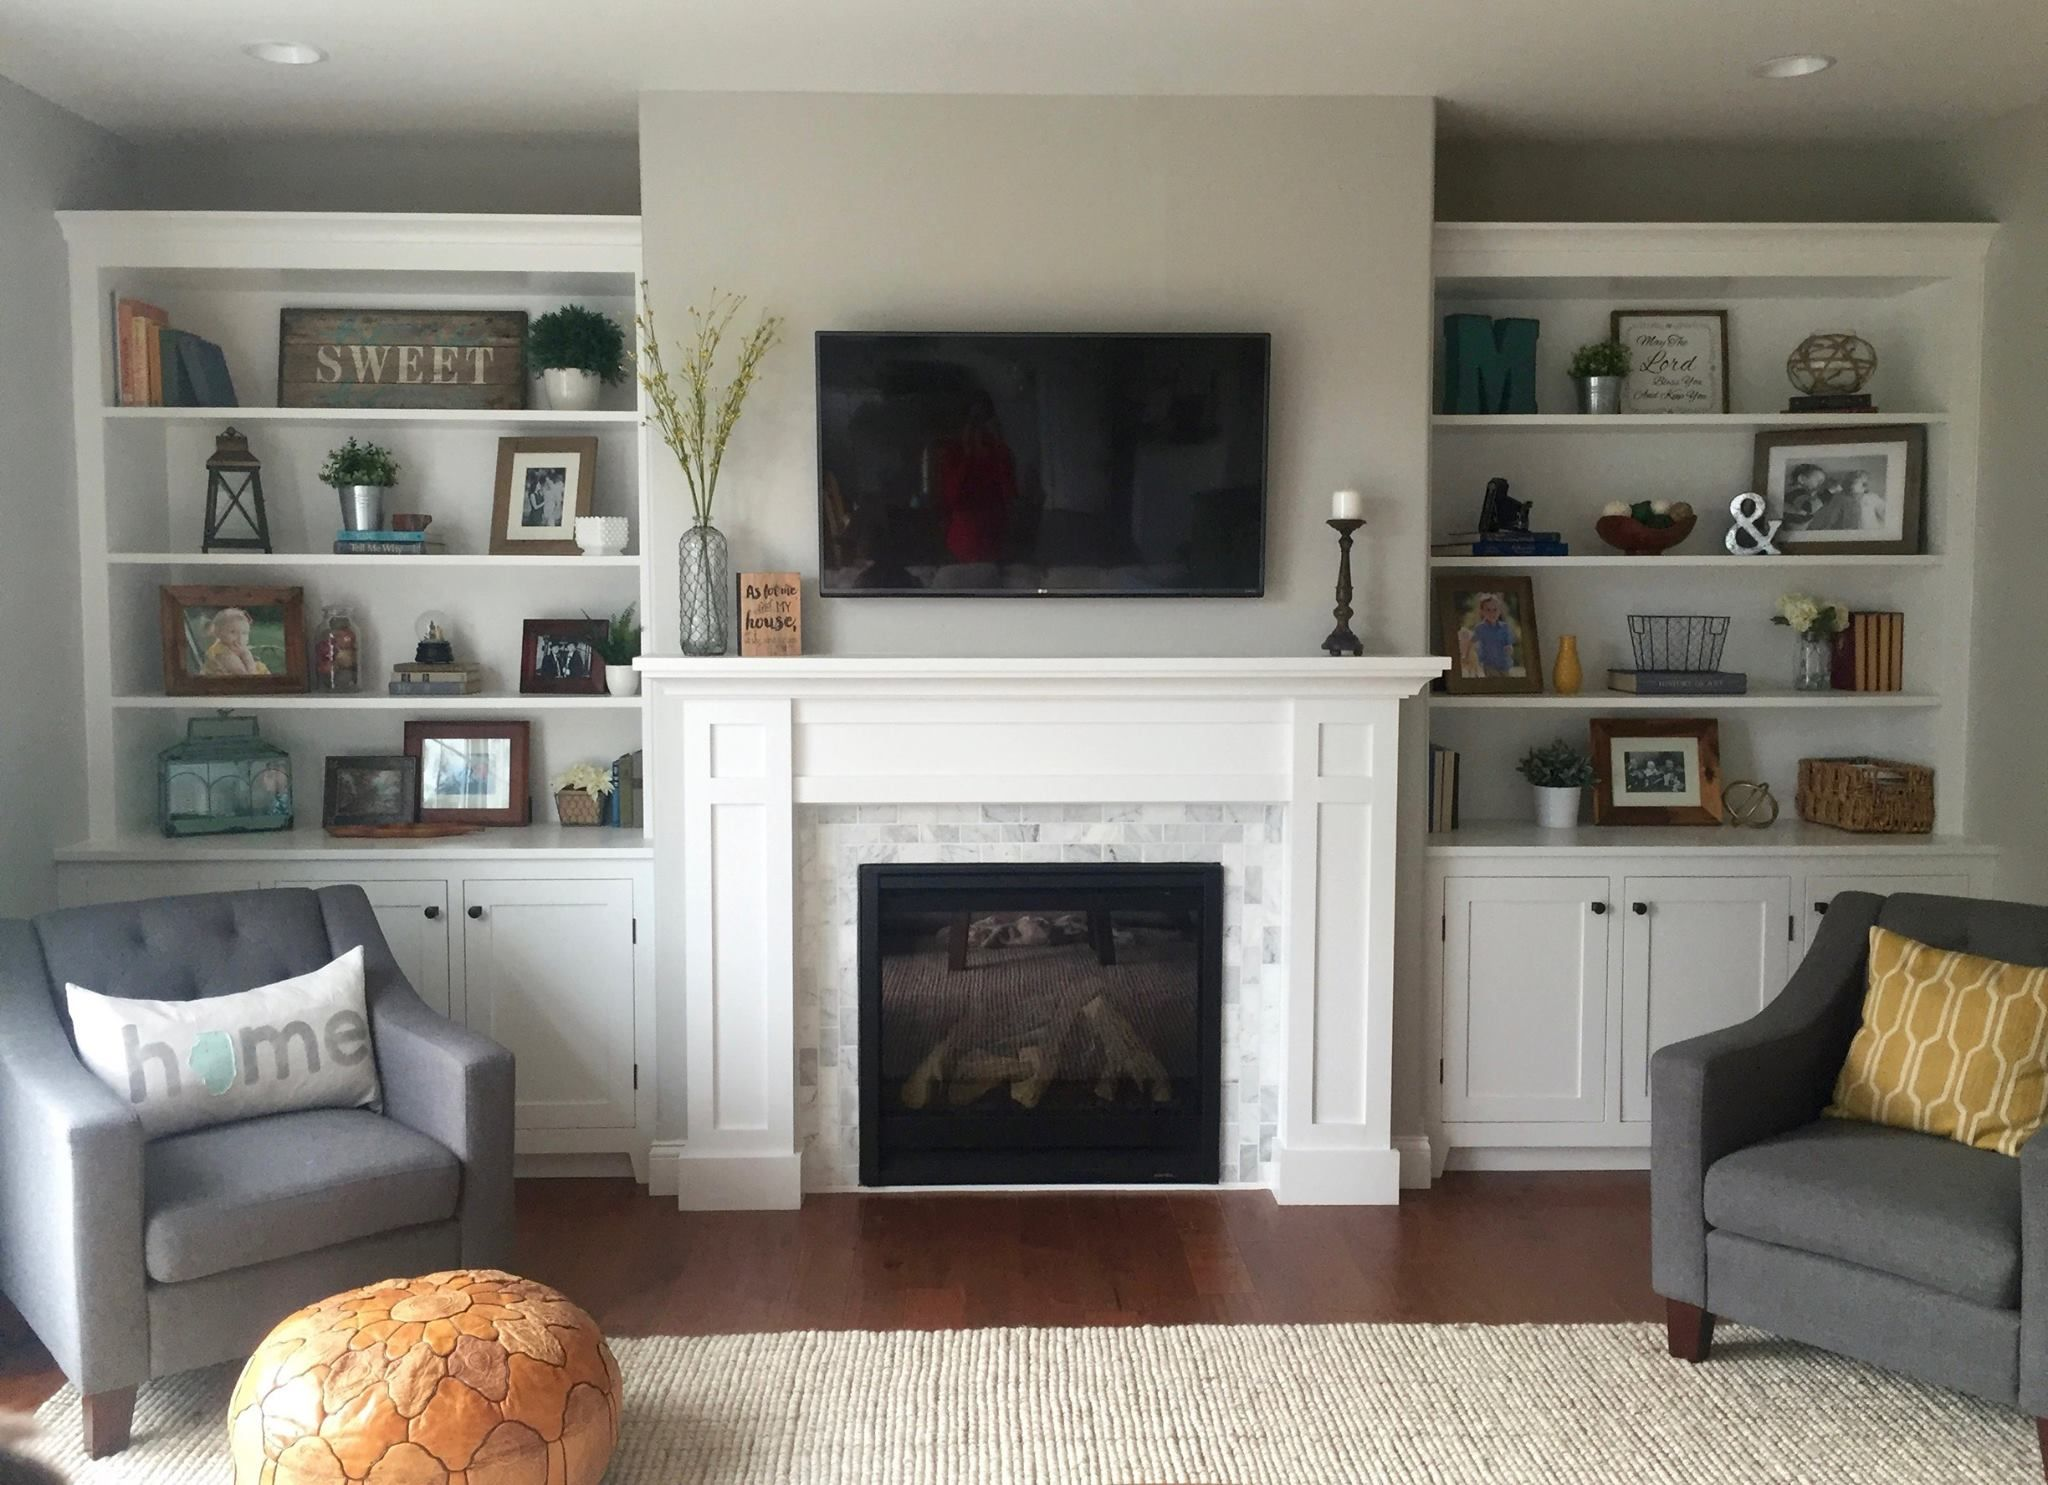 How to build a built in part 1 of 3 the cabinets shaker style fireplace mantel and plywood - Contemporary built in bookshelves ...